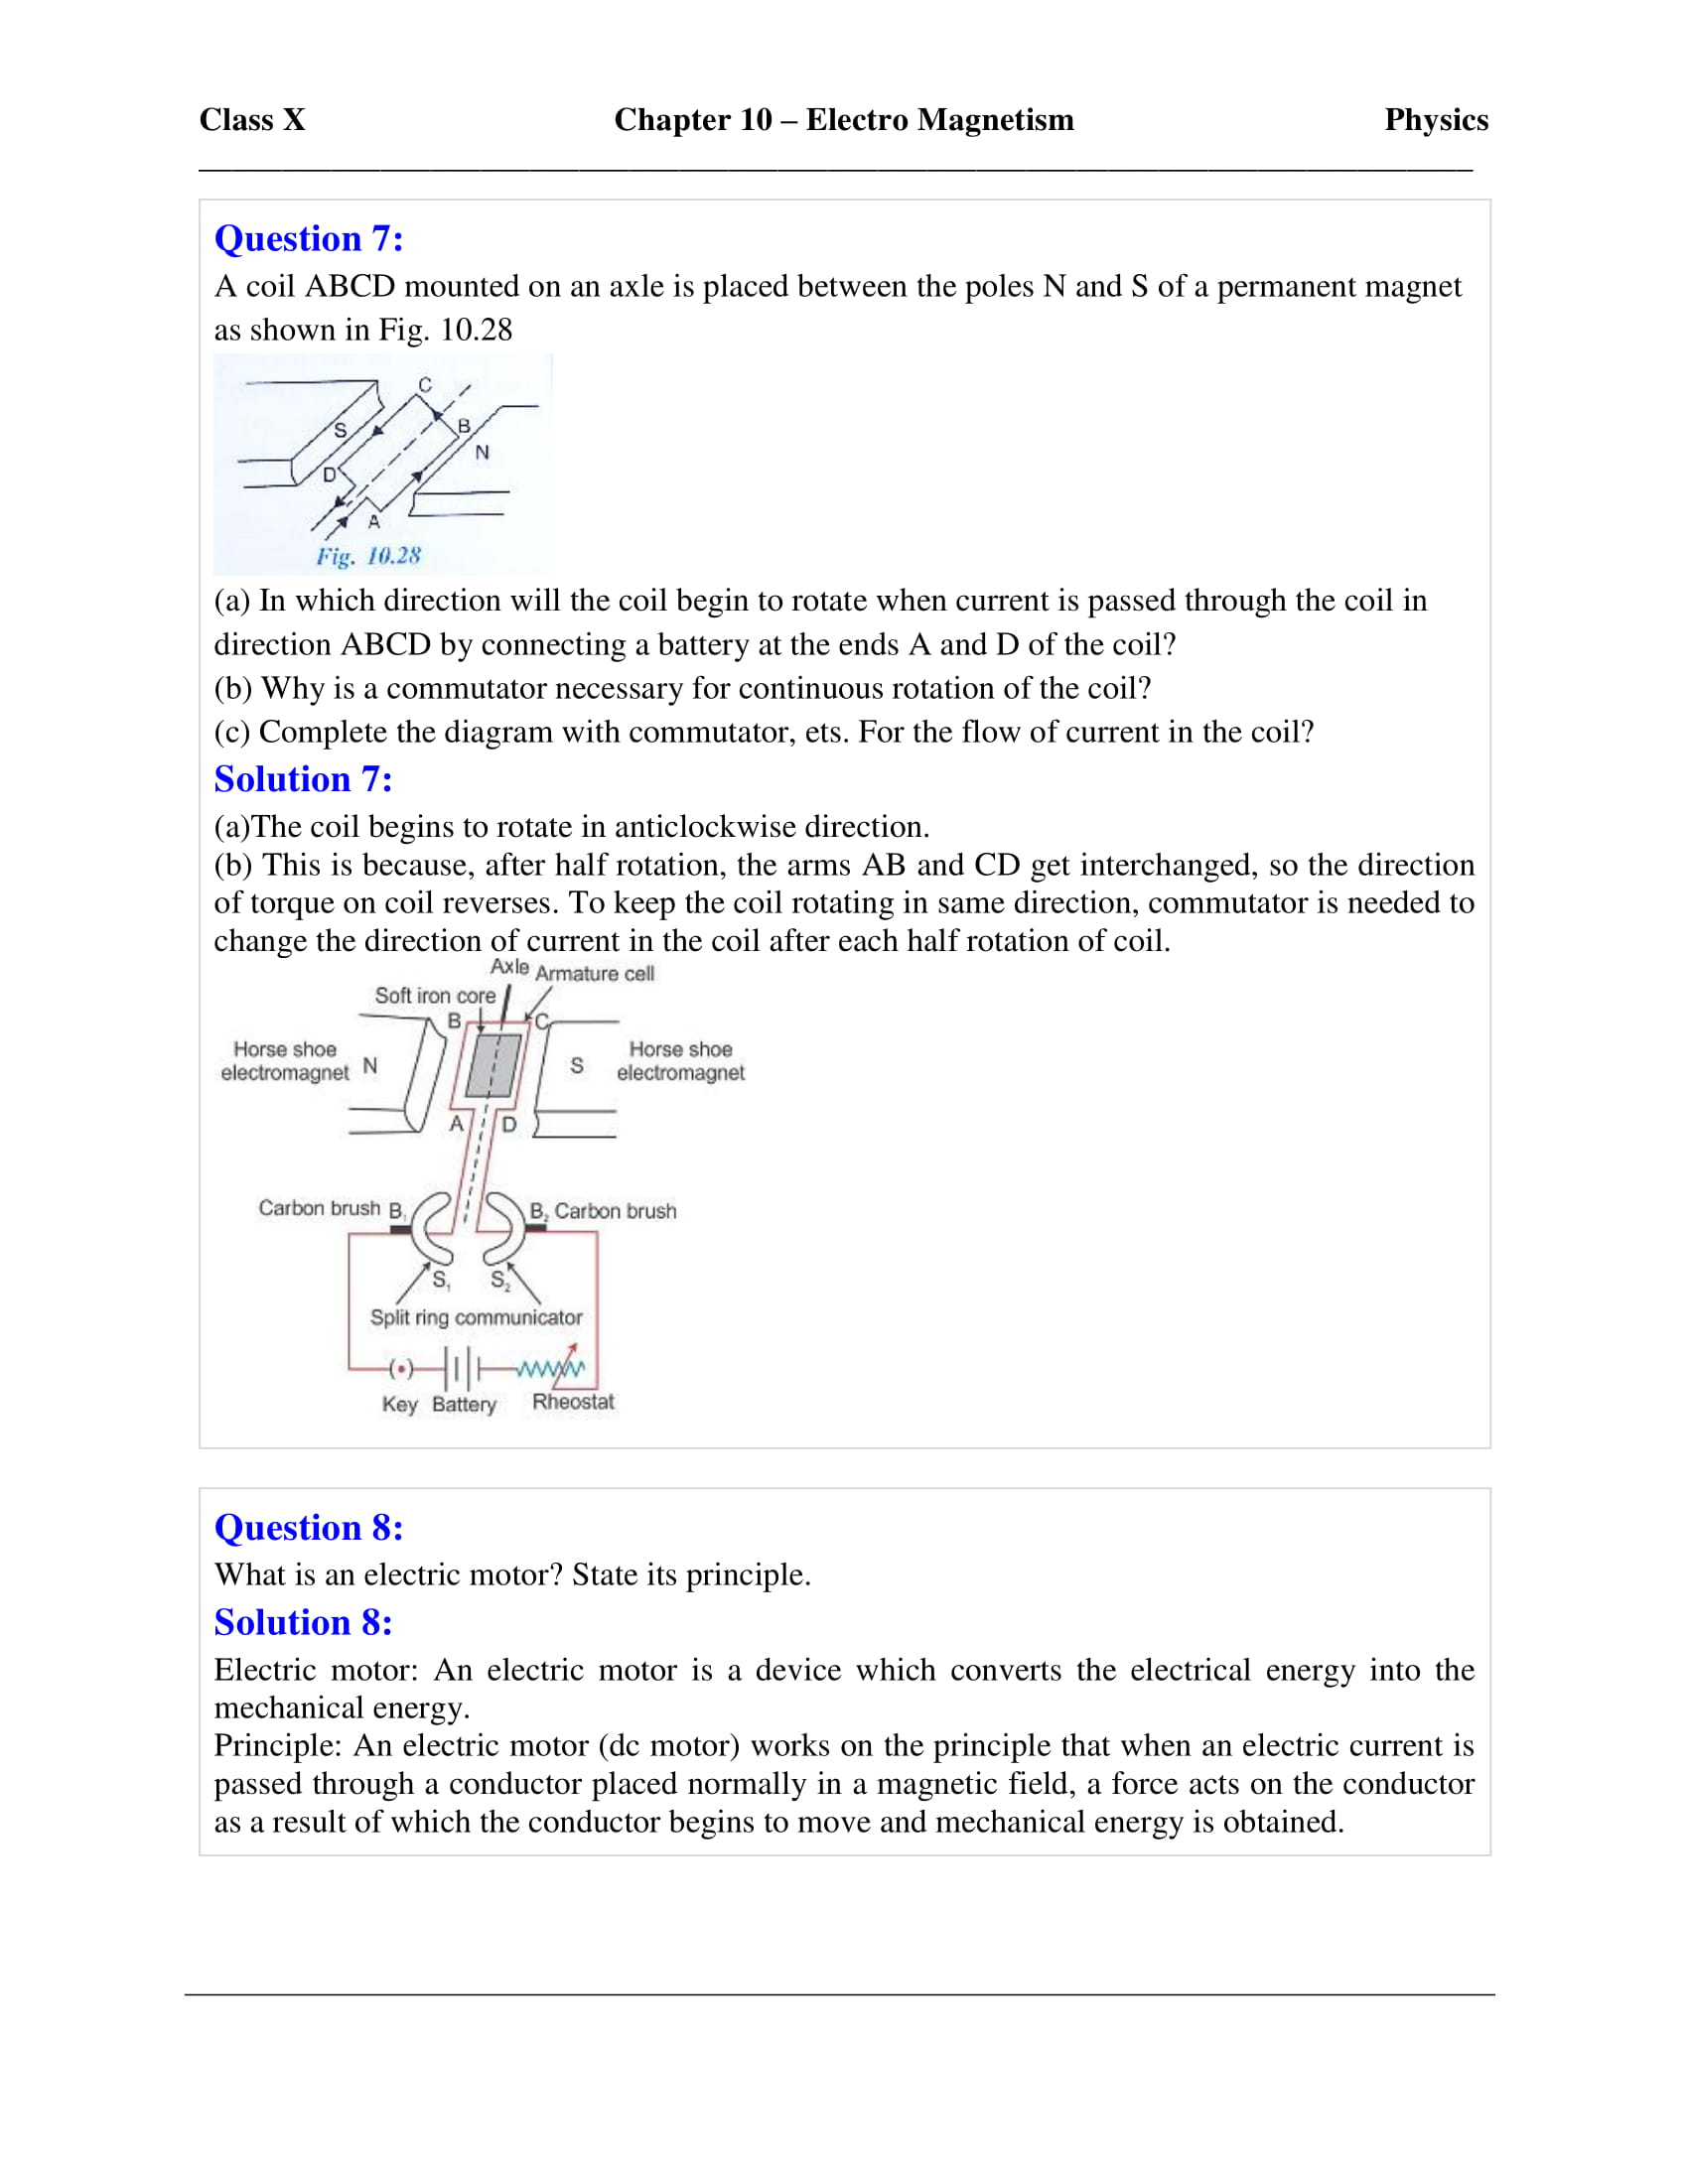 icse-selina-physics-solutions-class-10-chapter-10-electro-magnetism-14